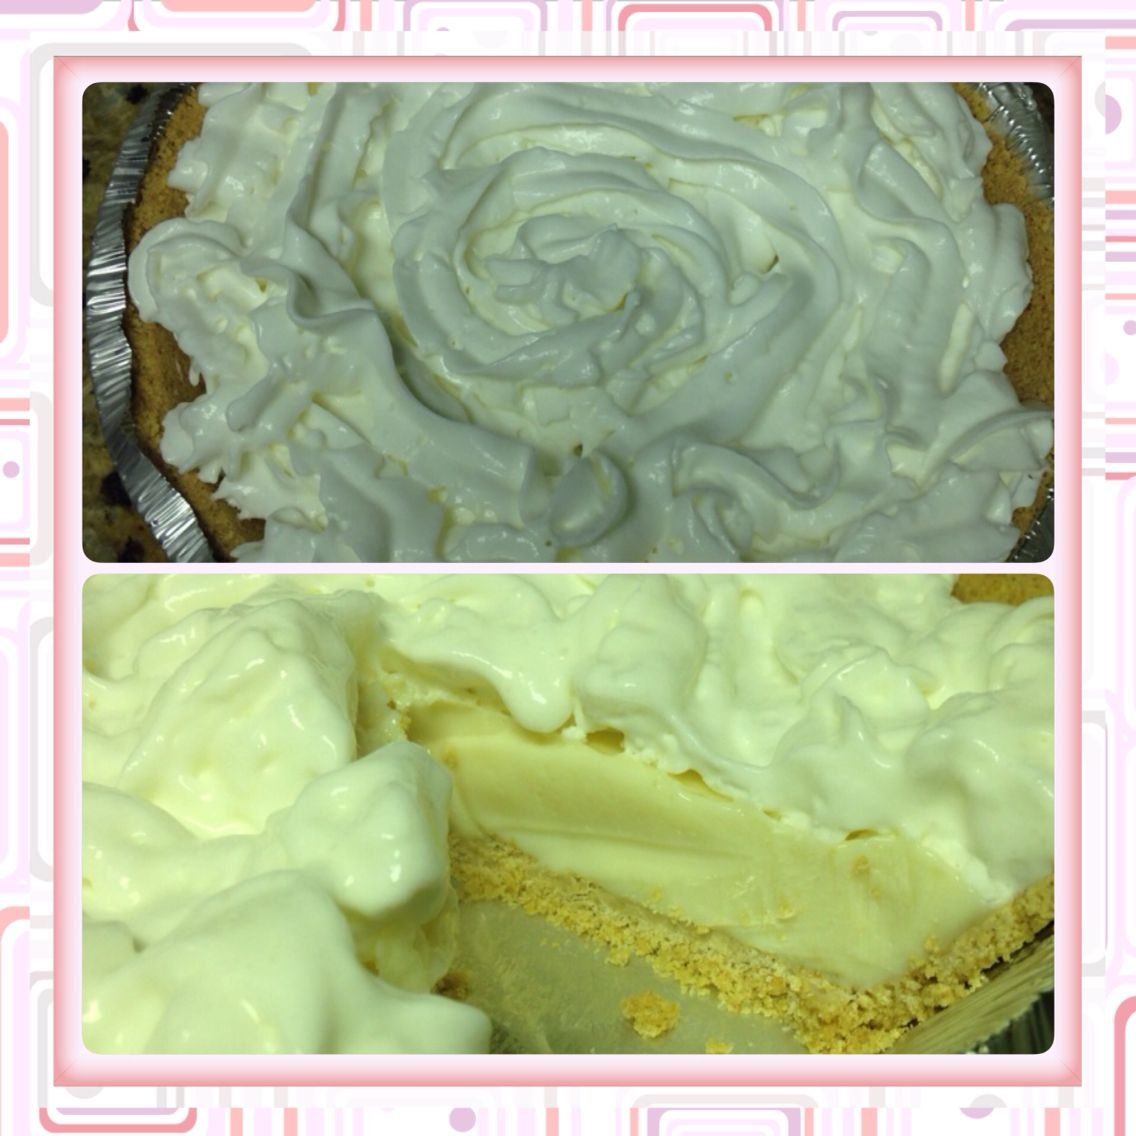 My Lemon pie!